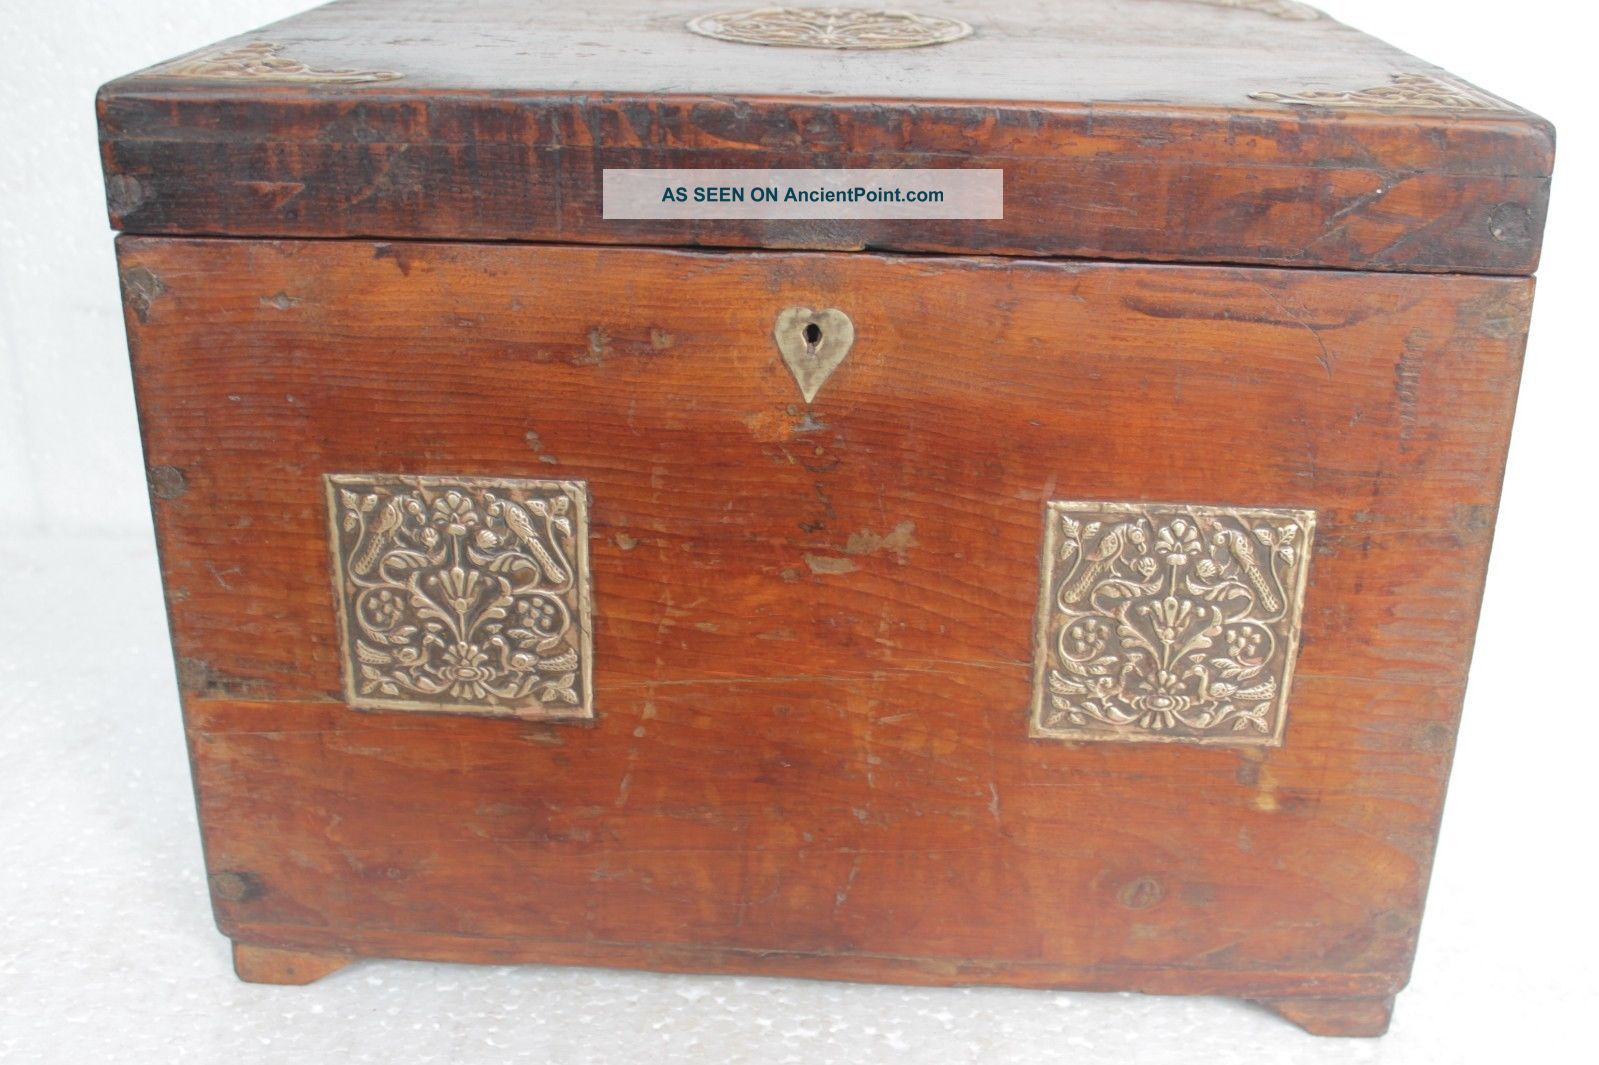 Antique Restored Wooden Handmade Secret Opening Box Many Compartments Boxes Photo 2